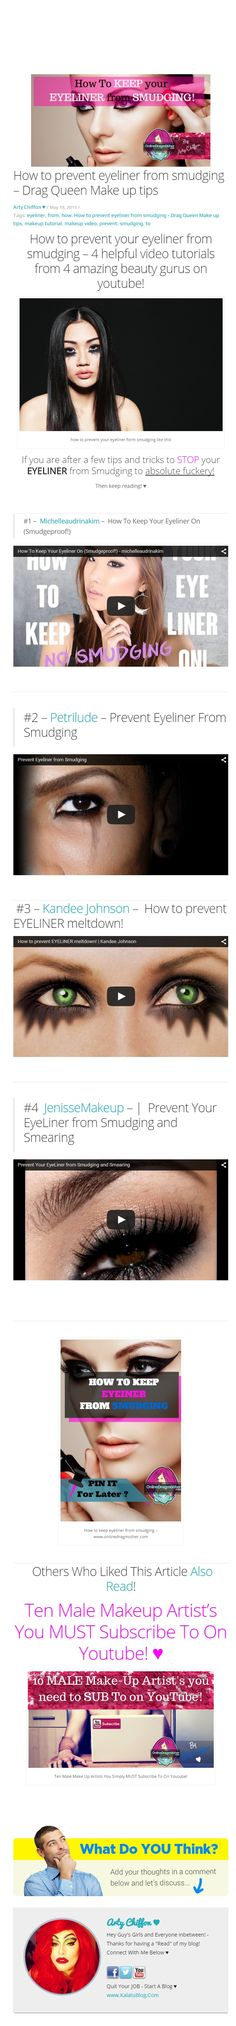 How to prevent eyeliner from smudging - Drag Queen Make up tips Drag Queen Makeup, Drag Makeup, Makeup Tips, Smudging, Helpful Hints, Eyeliner, Make Up, Beauty, Useful Tips